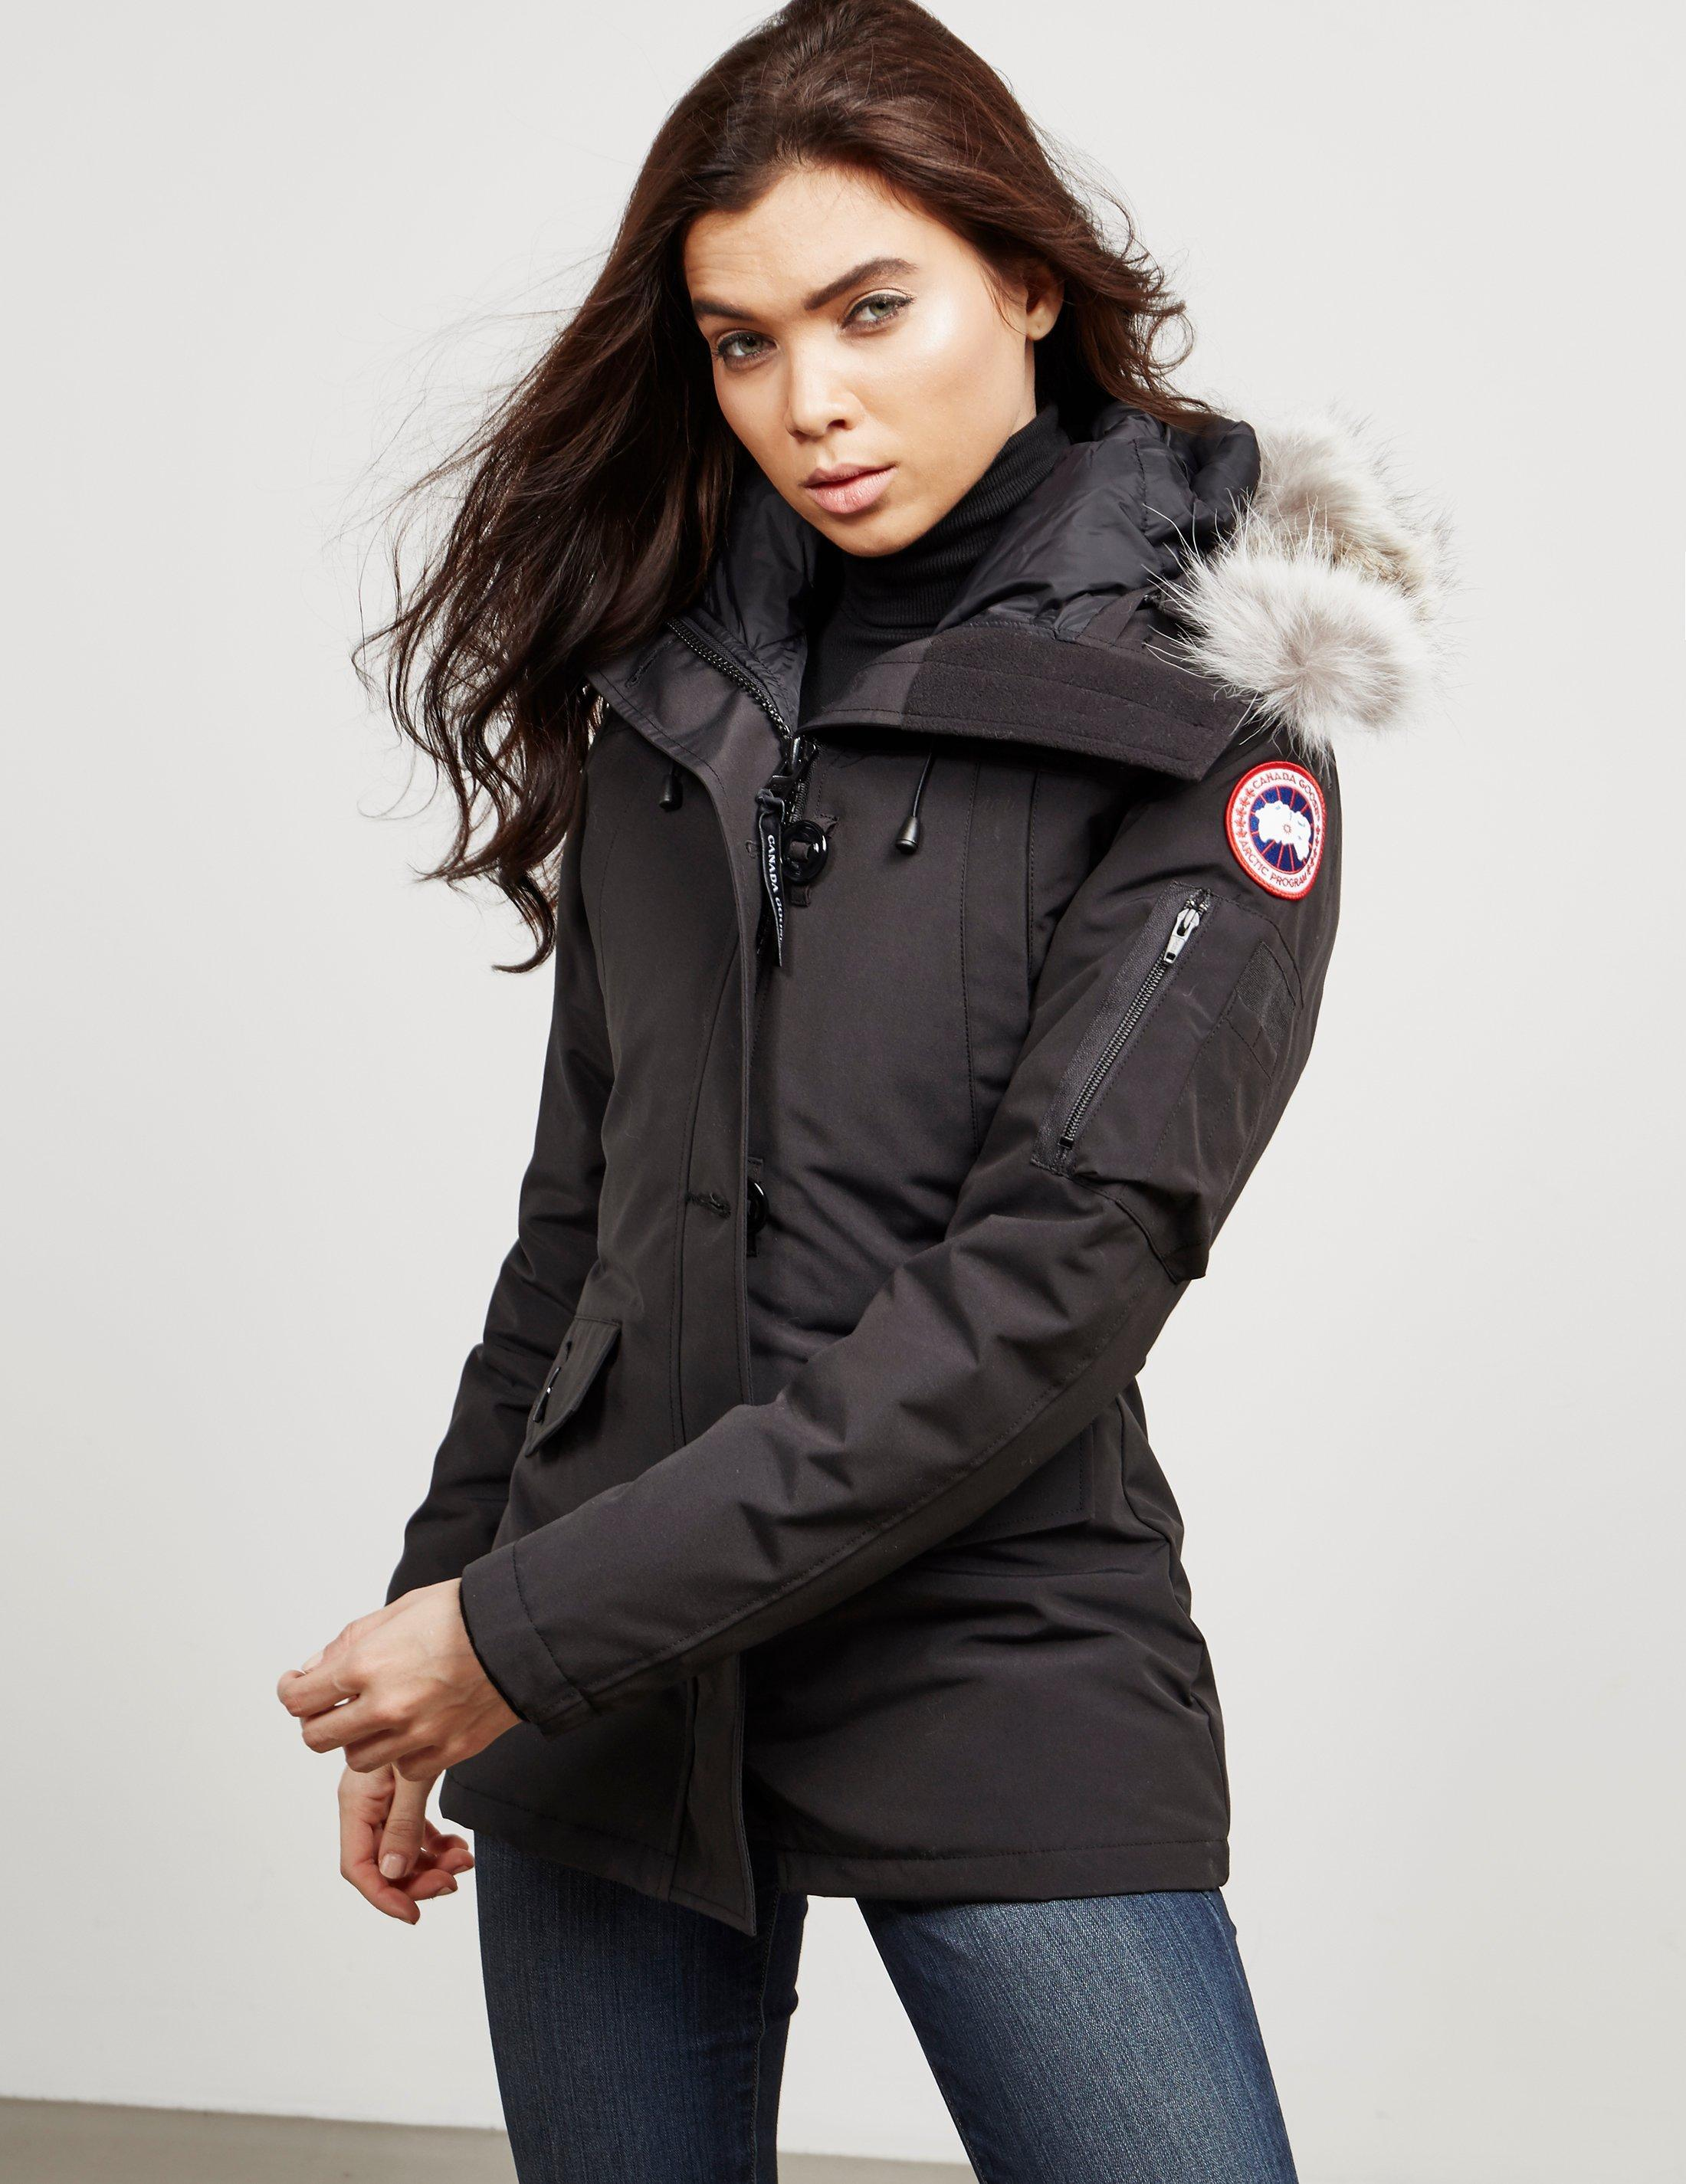 271ee60070e1 Canada Goose Montebello Padded Parka Jacket Black in Black - Lyst